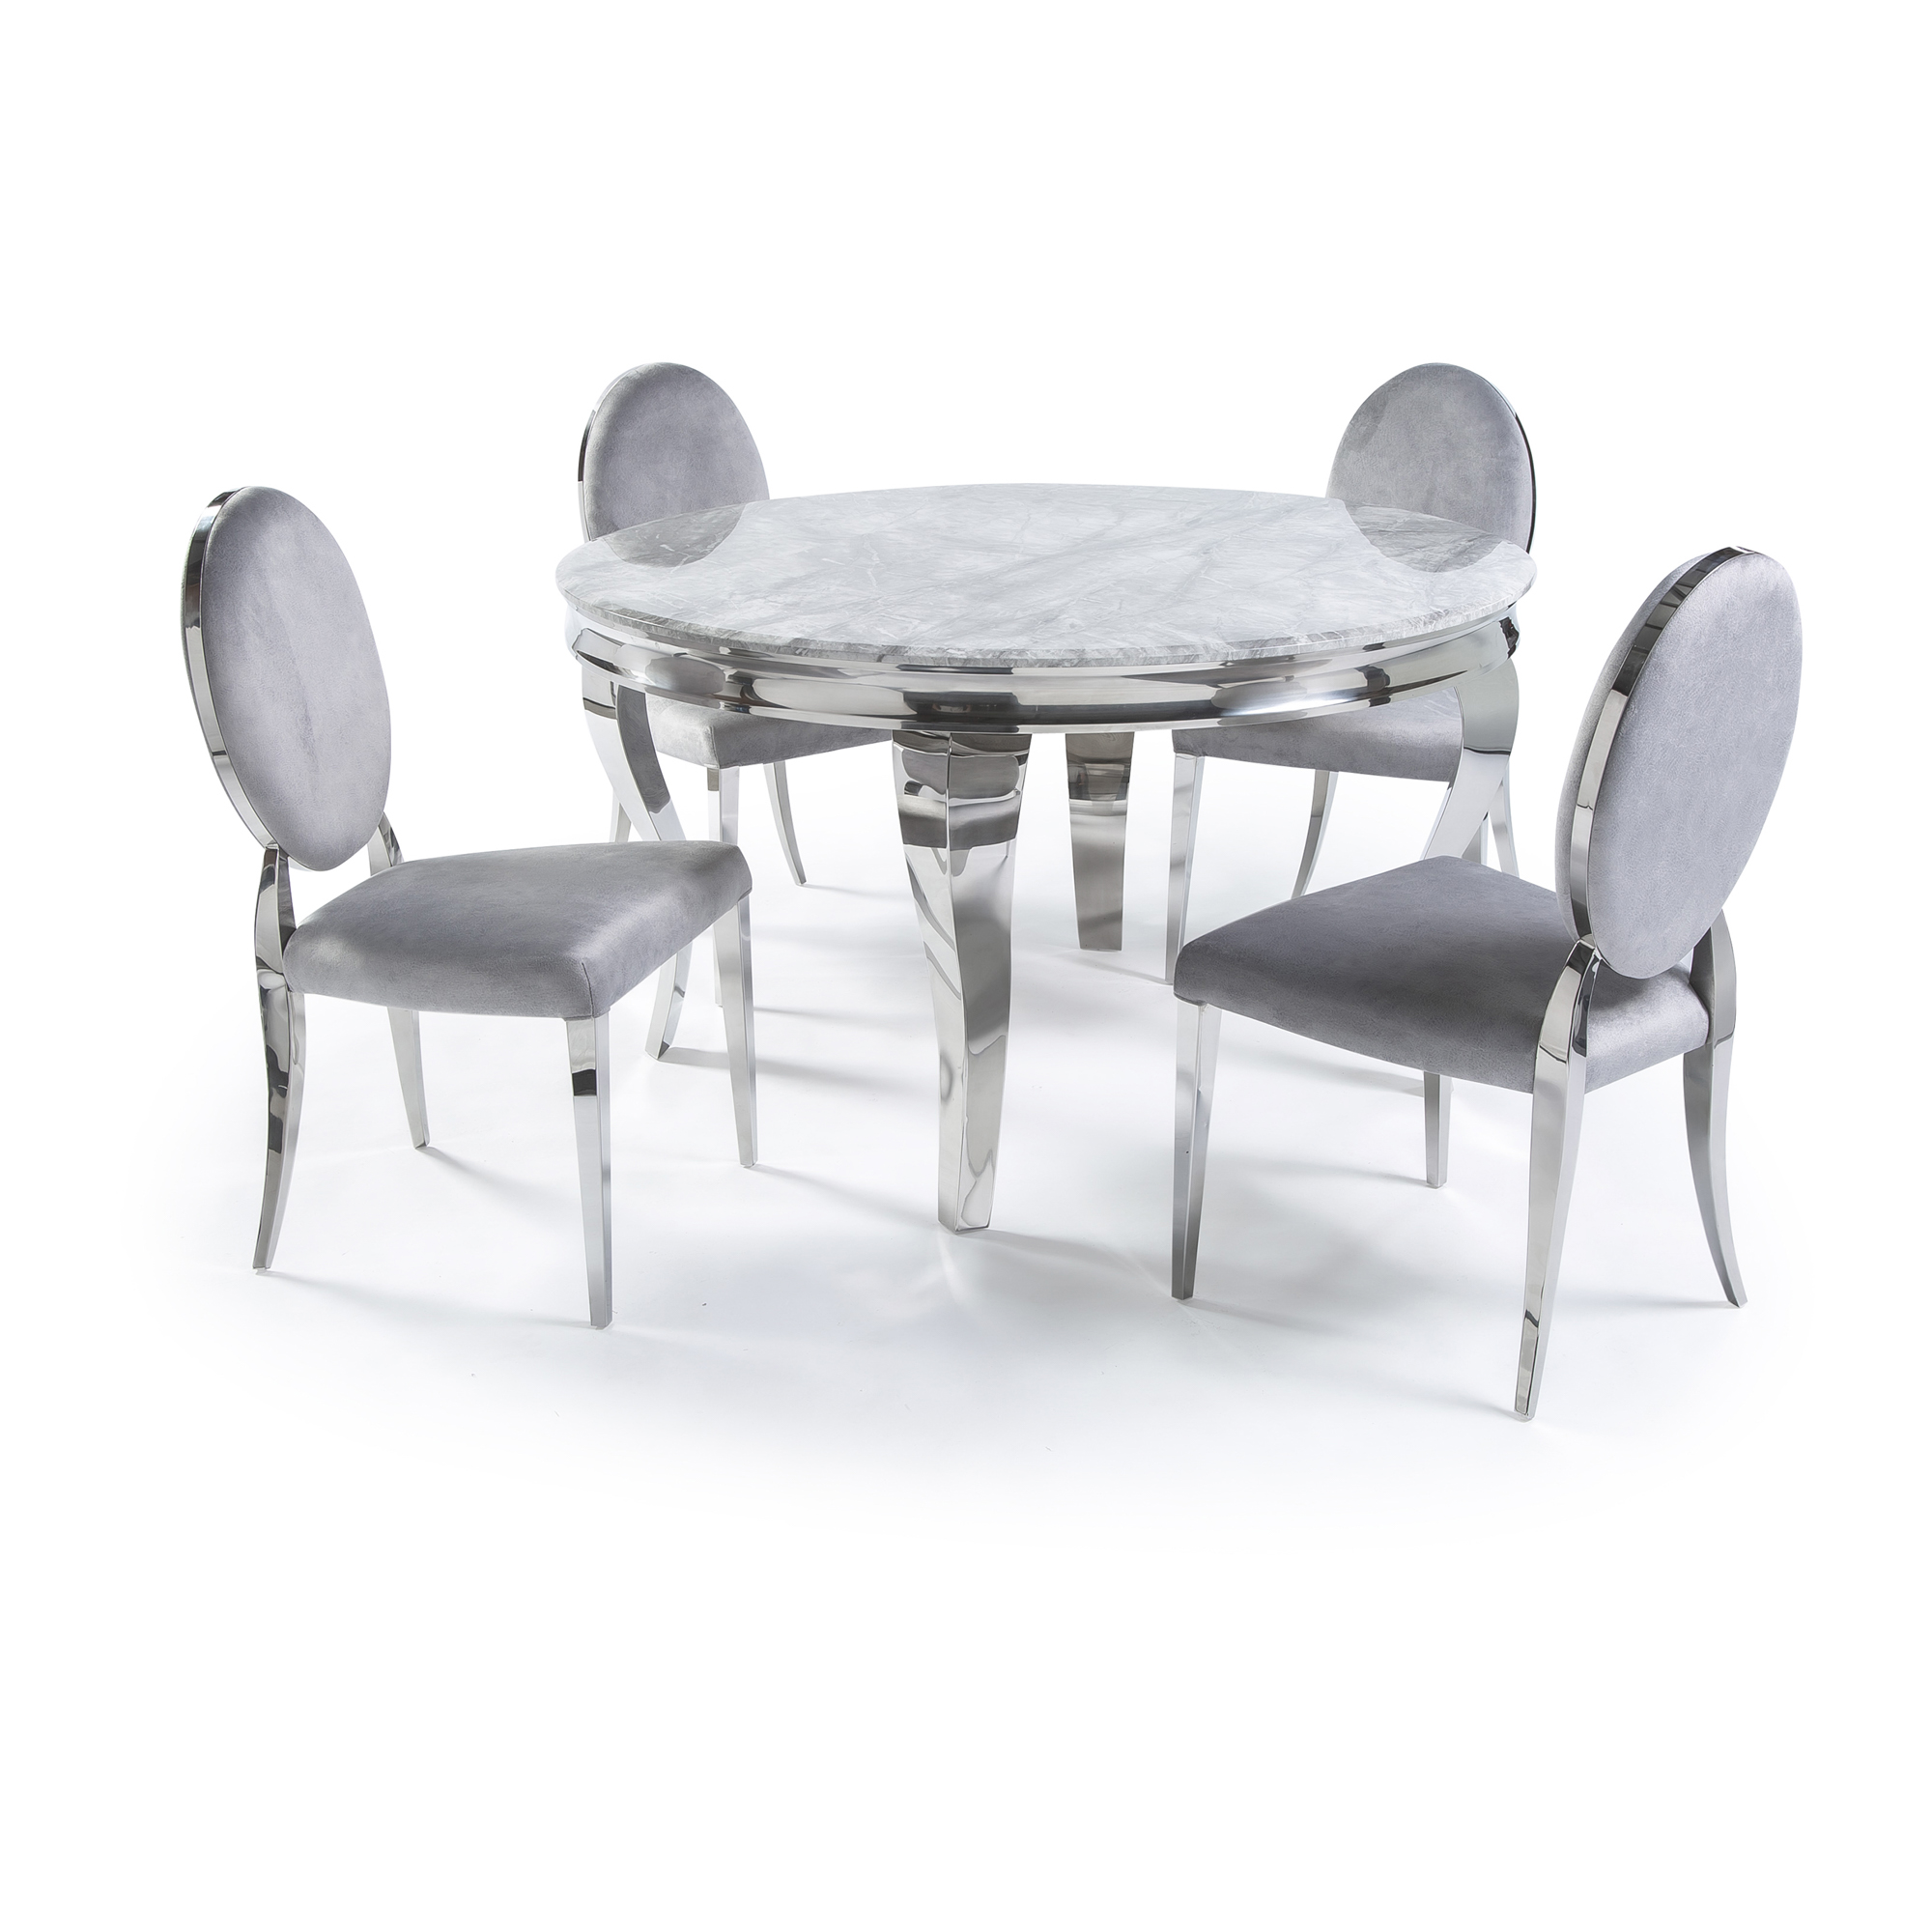 1.3m Circular Louis Polished Steel Dining Grey Marble Table Set with 4 Louis Grey Brushed Velvet Dining Chair